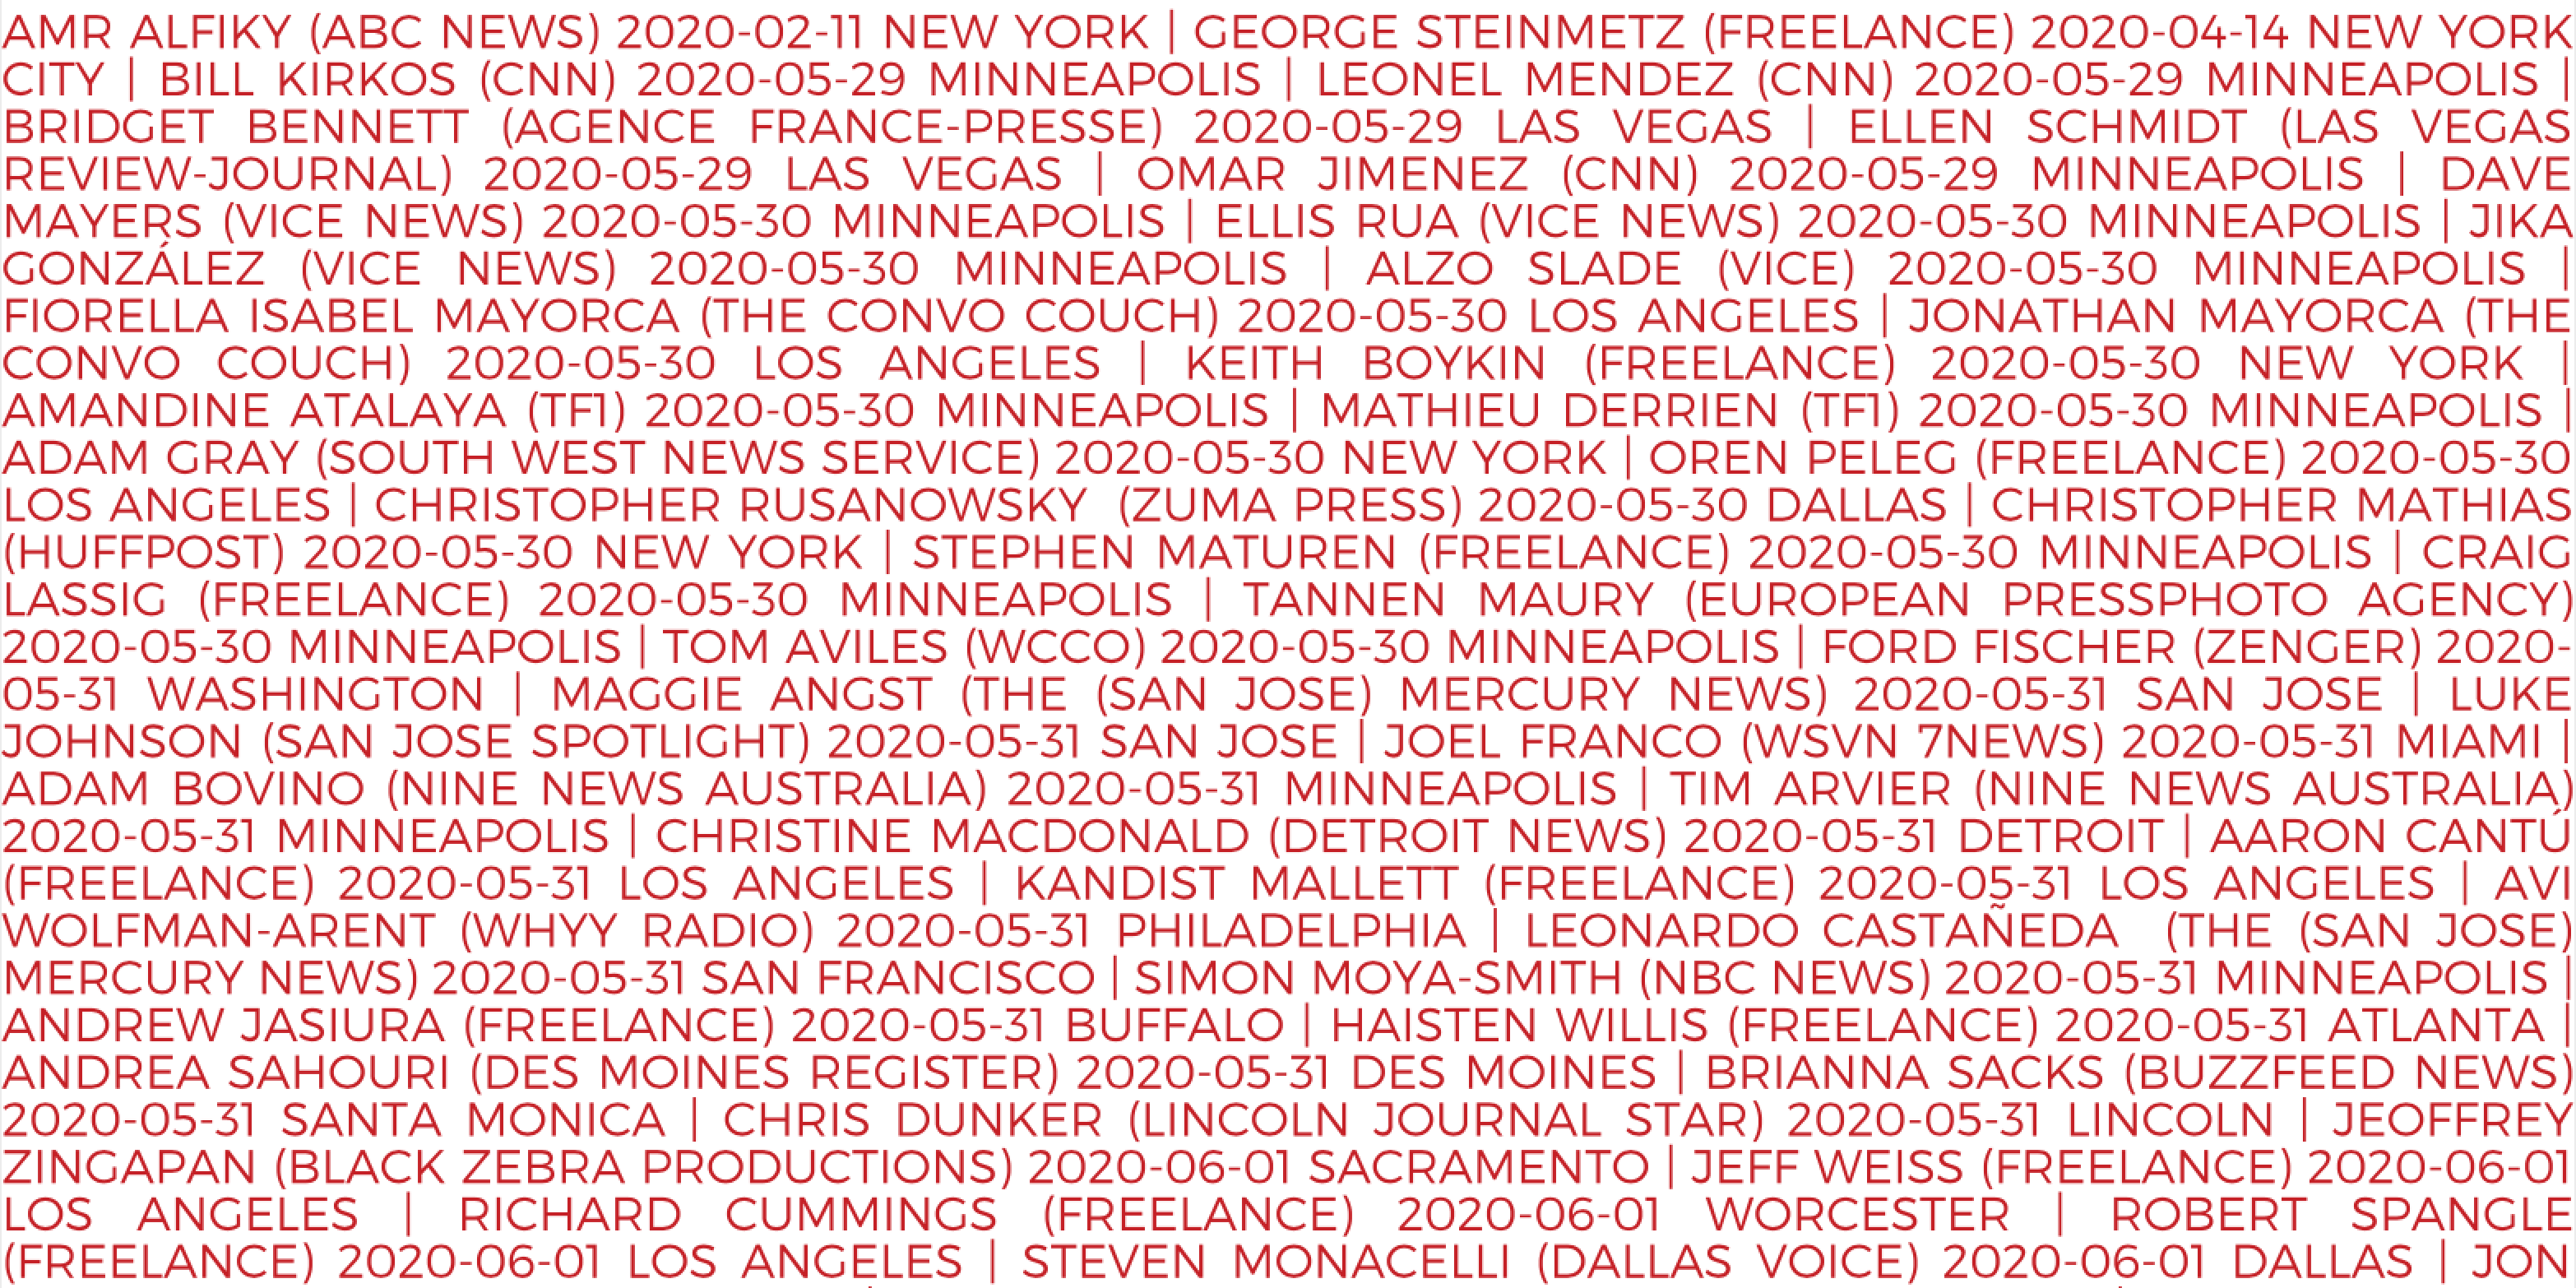 Image from the U.S. Press Freedom arrest report, with names, affiliations, and dates of arrests of U.S. journalists throughout 2020.